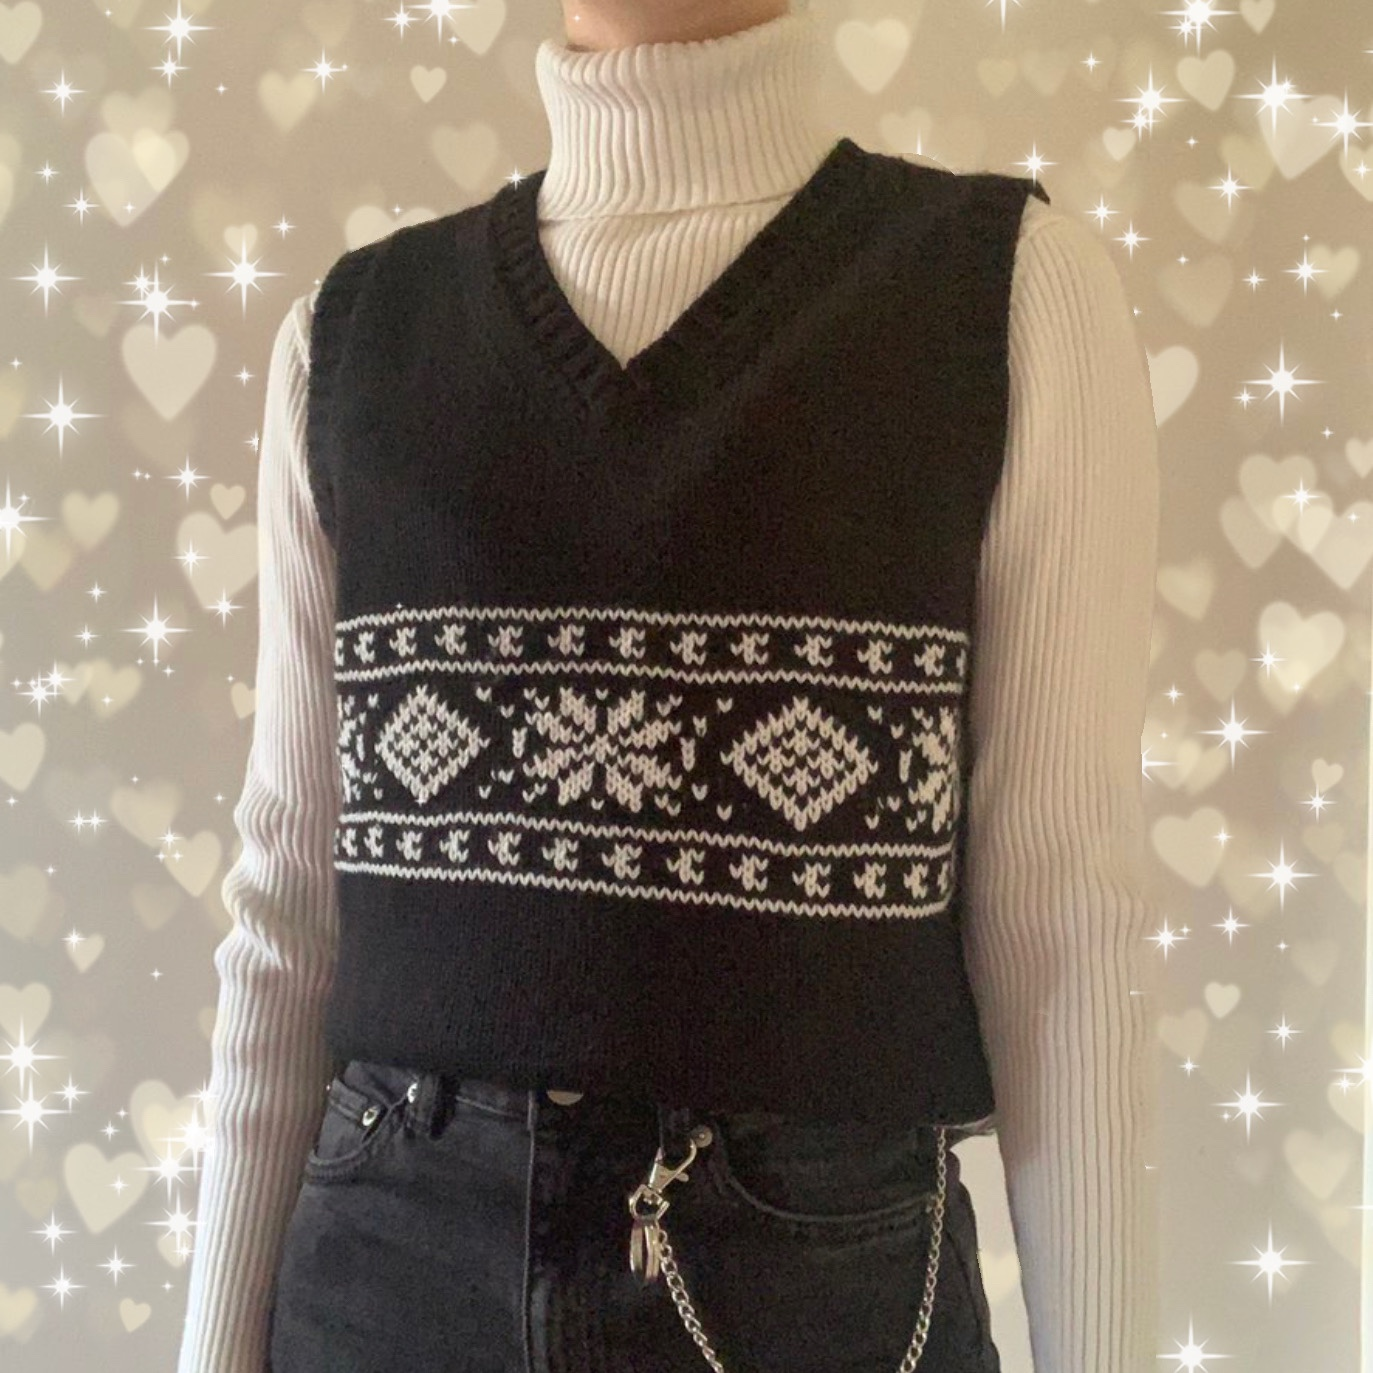 Product Image 1 - price reduction!! the cutest patterned sweater